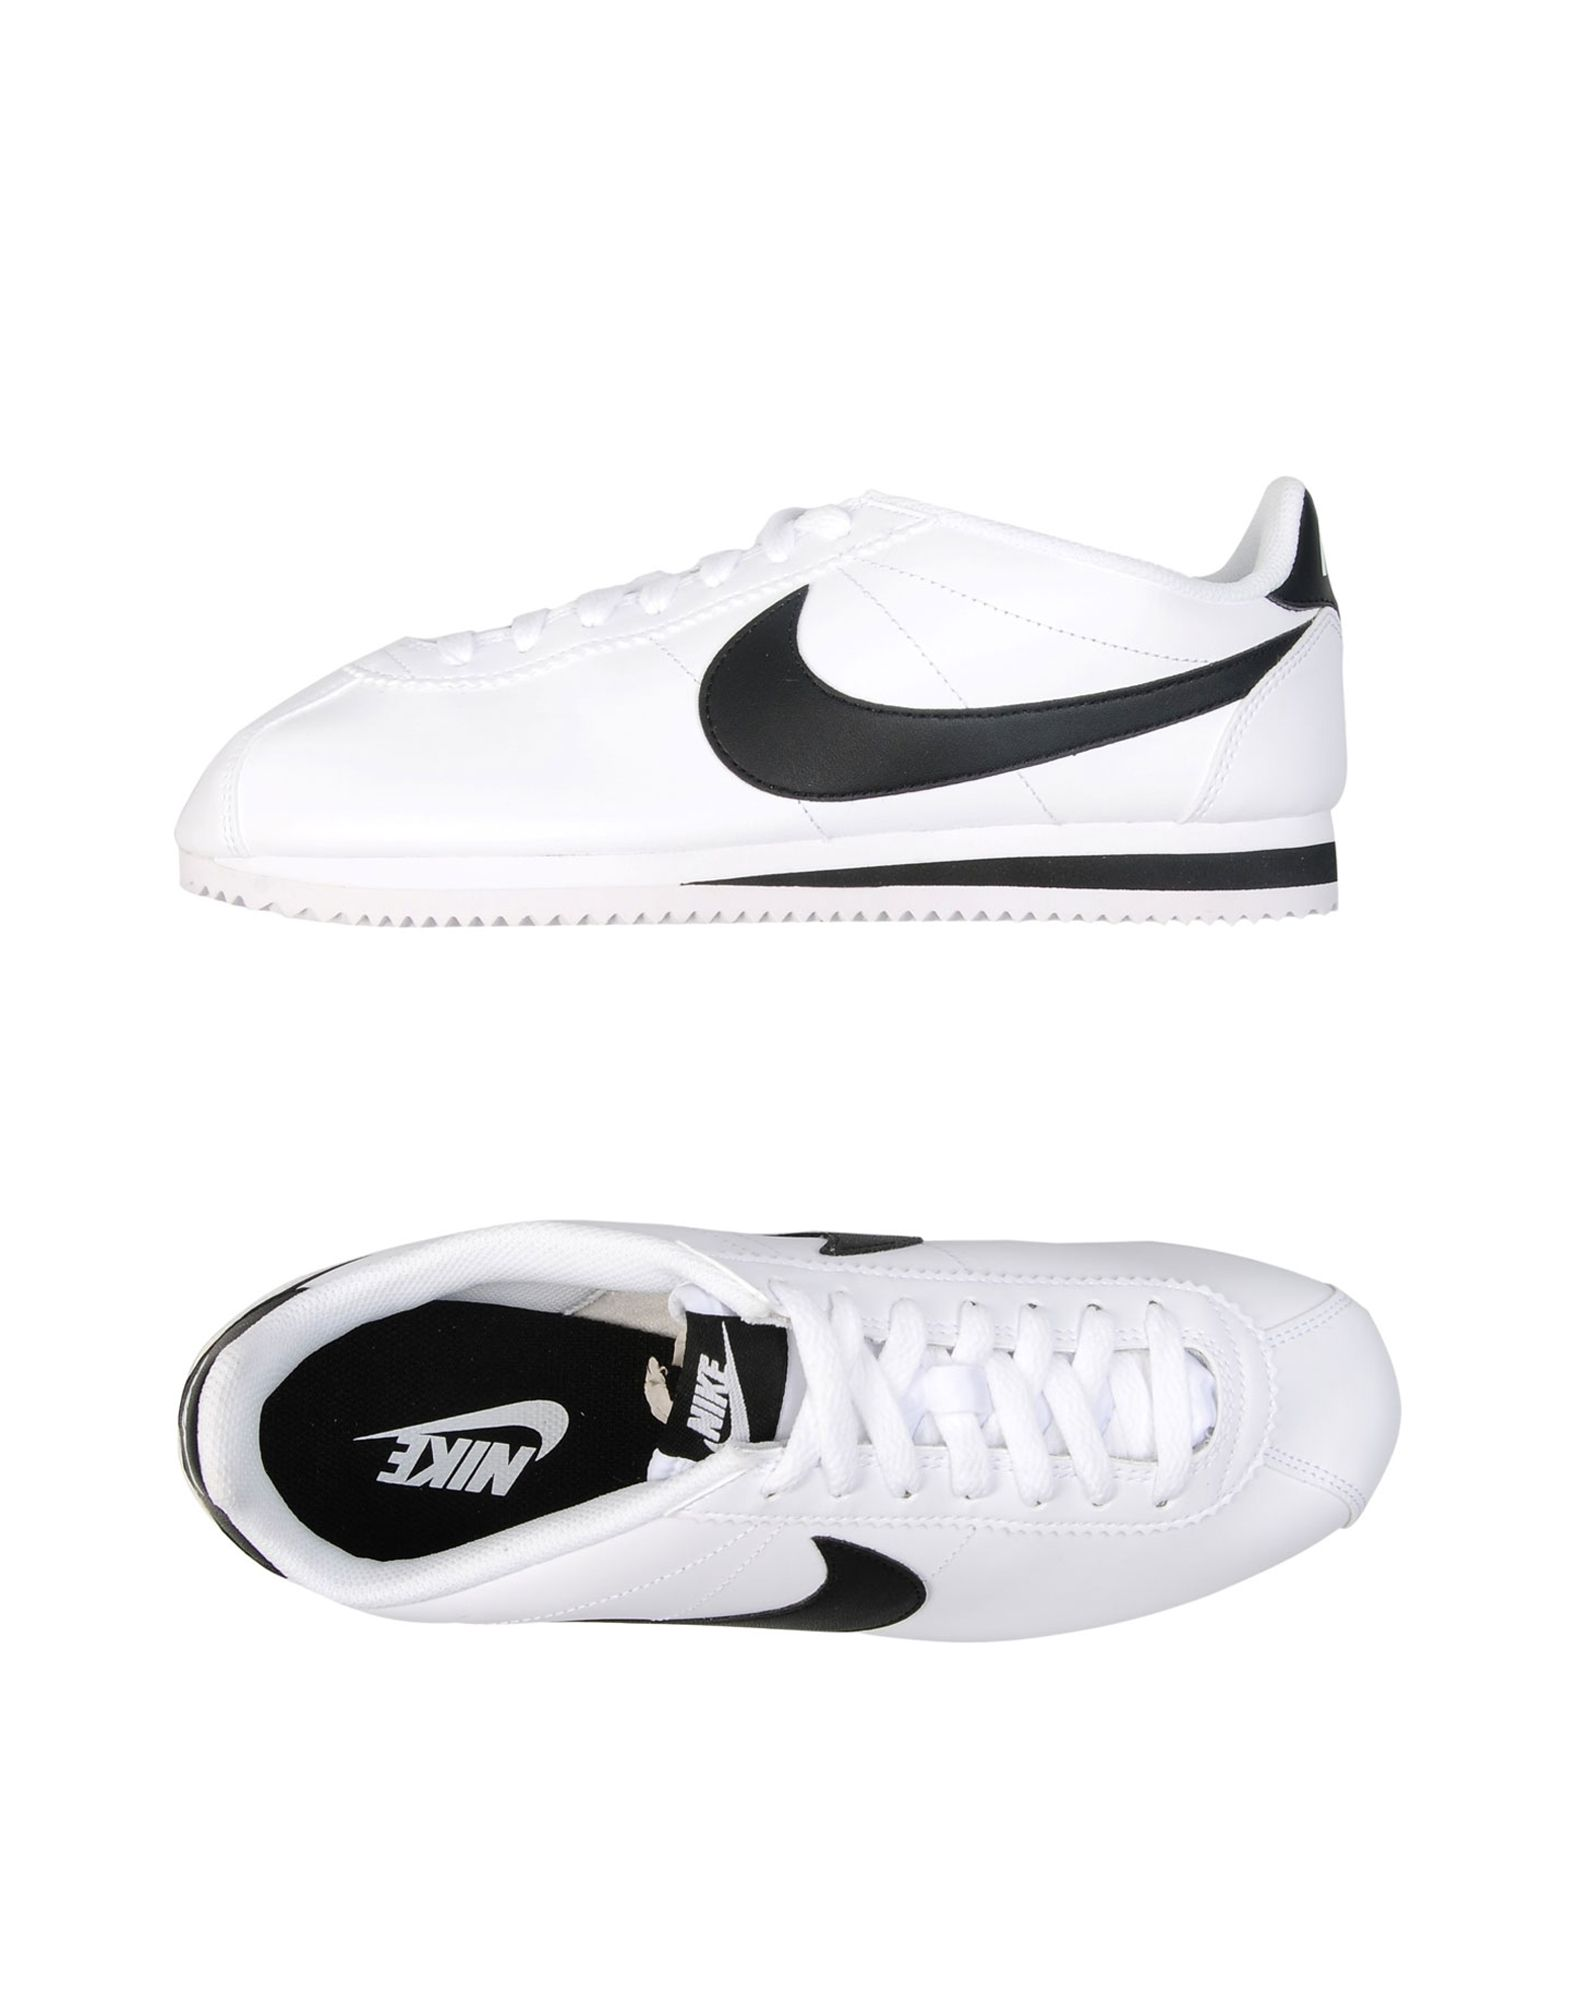 Sneakers Nike - Wmns Classic Cortez Leather - Nike Donna - 44994466RM a84924